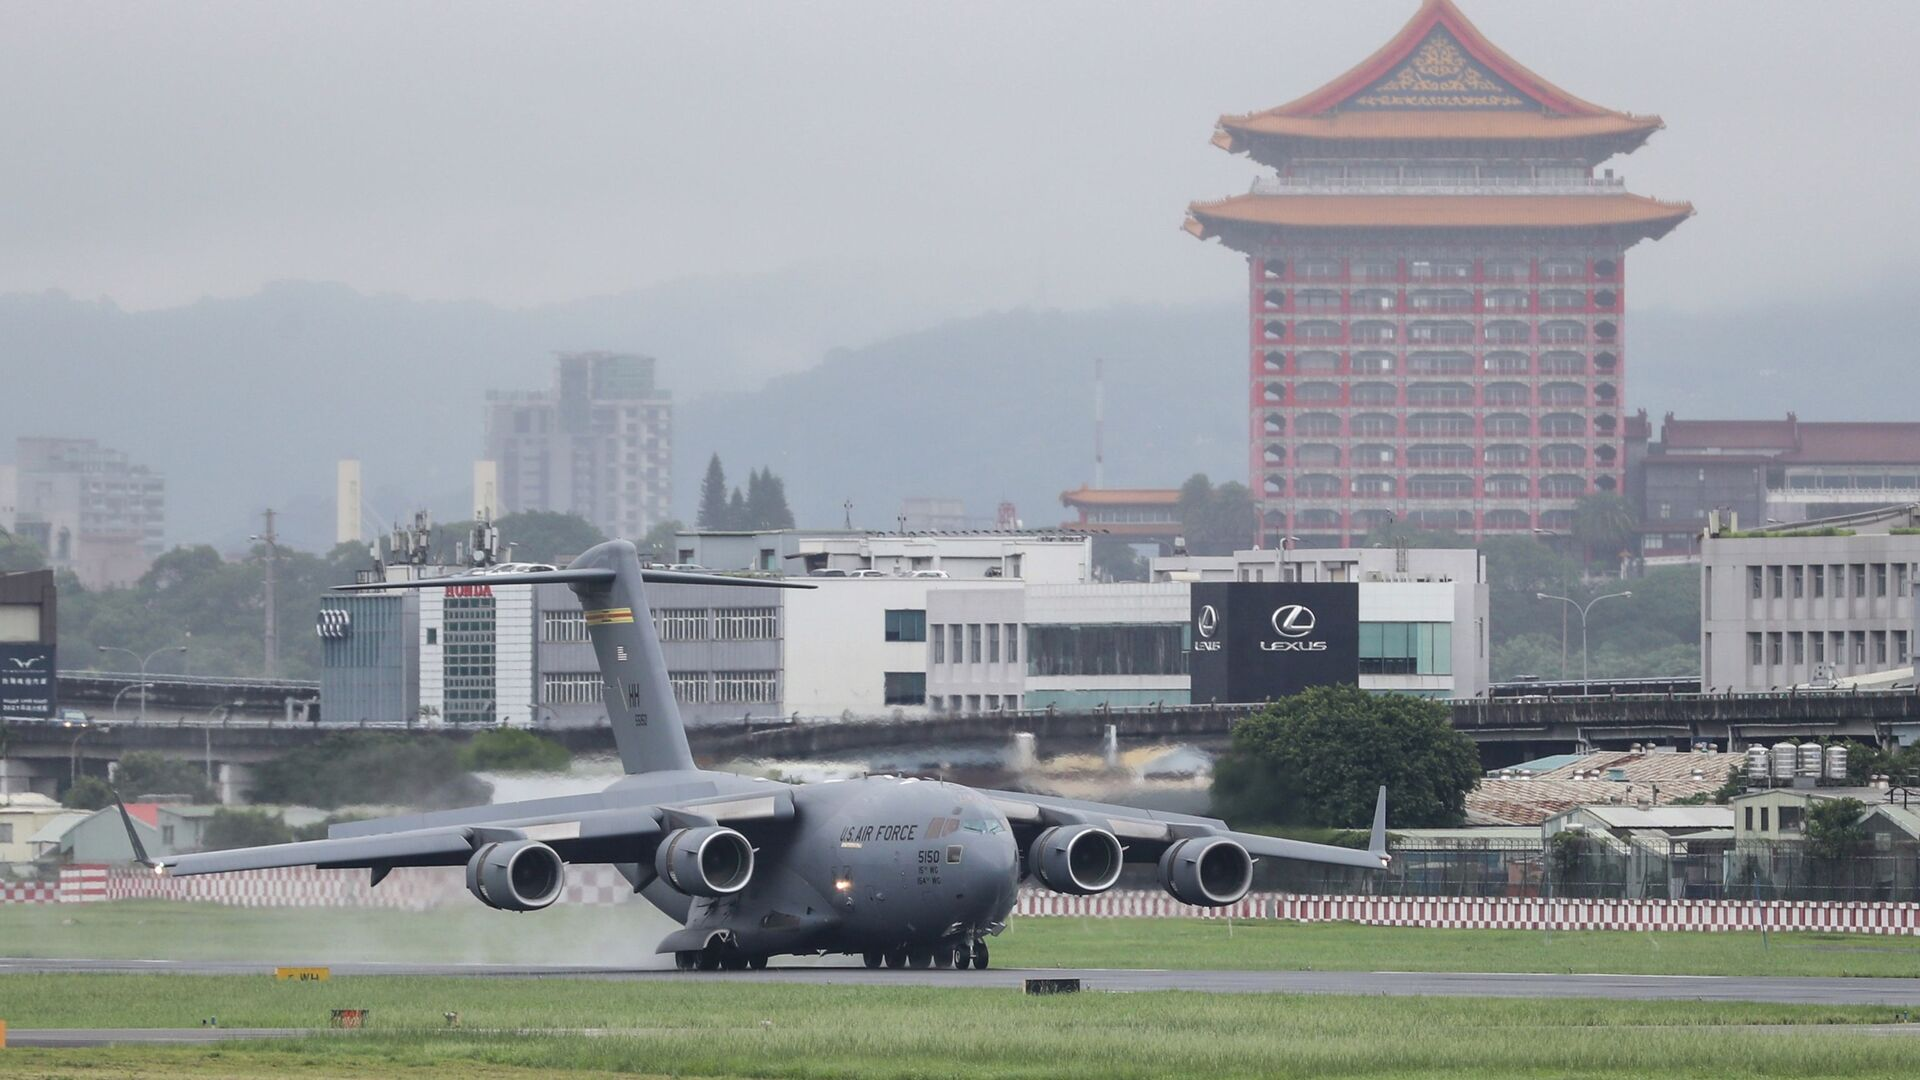 A U.S. military aircraft carrying a group of U.S. senators arrives at the Songshan Airport in Taipei, Taiwan on Sunday, June 6, 2021 - Sputnik International, 1920, 12.08.2021